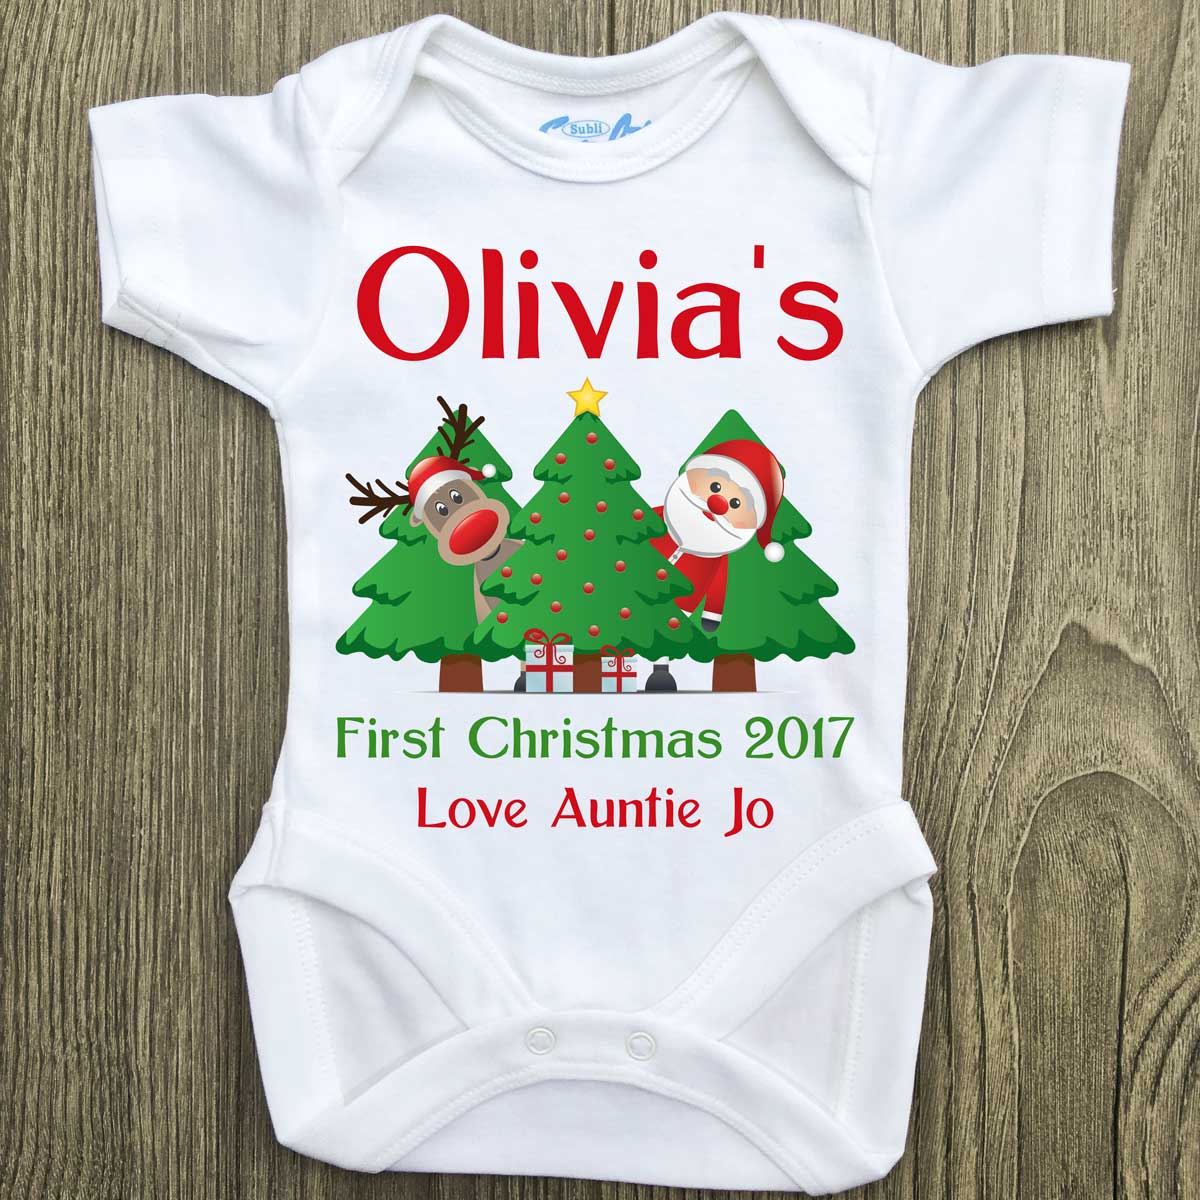 Personalised Baby Grows. For babygrow and onesie printing, design your own babygrow with text, images or our custom designs. 8 colours. Fast, quality custom printing for unique personalised gifts/5().